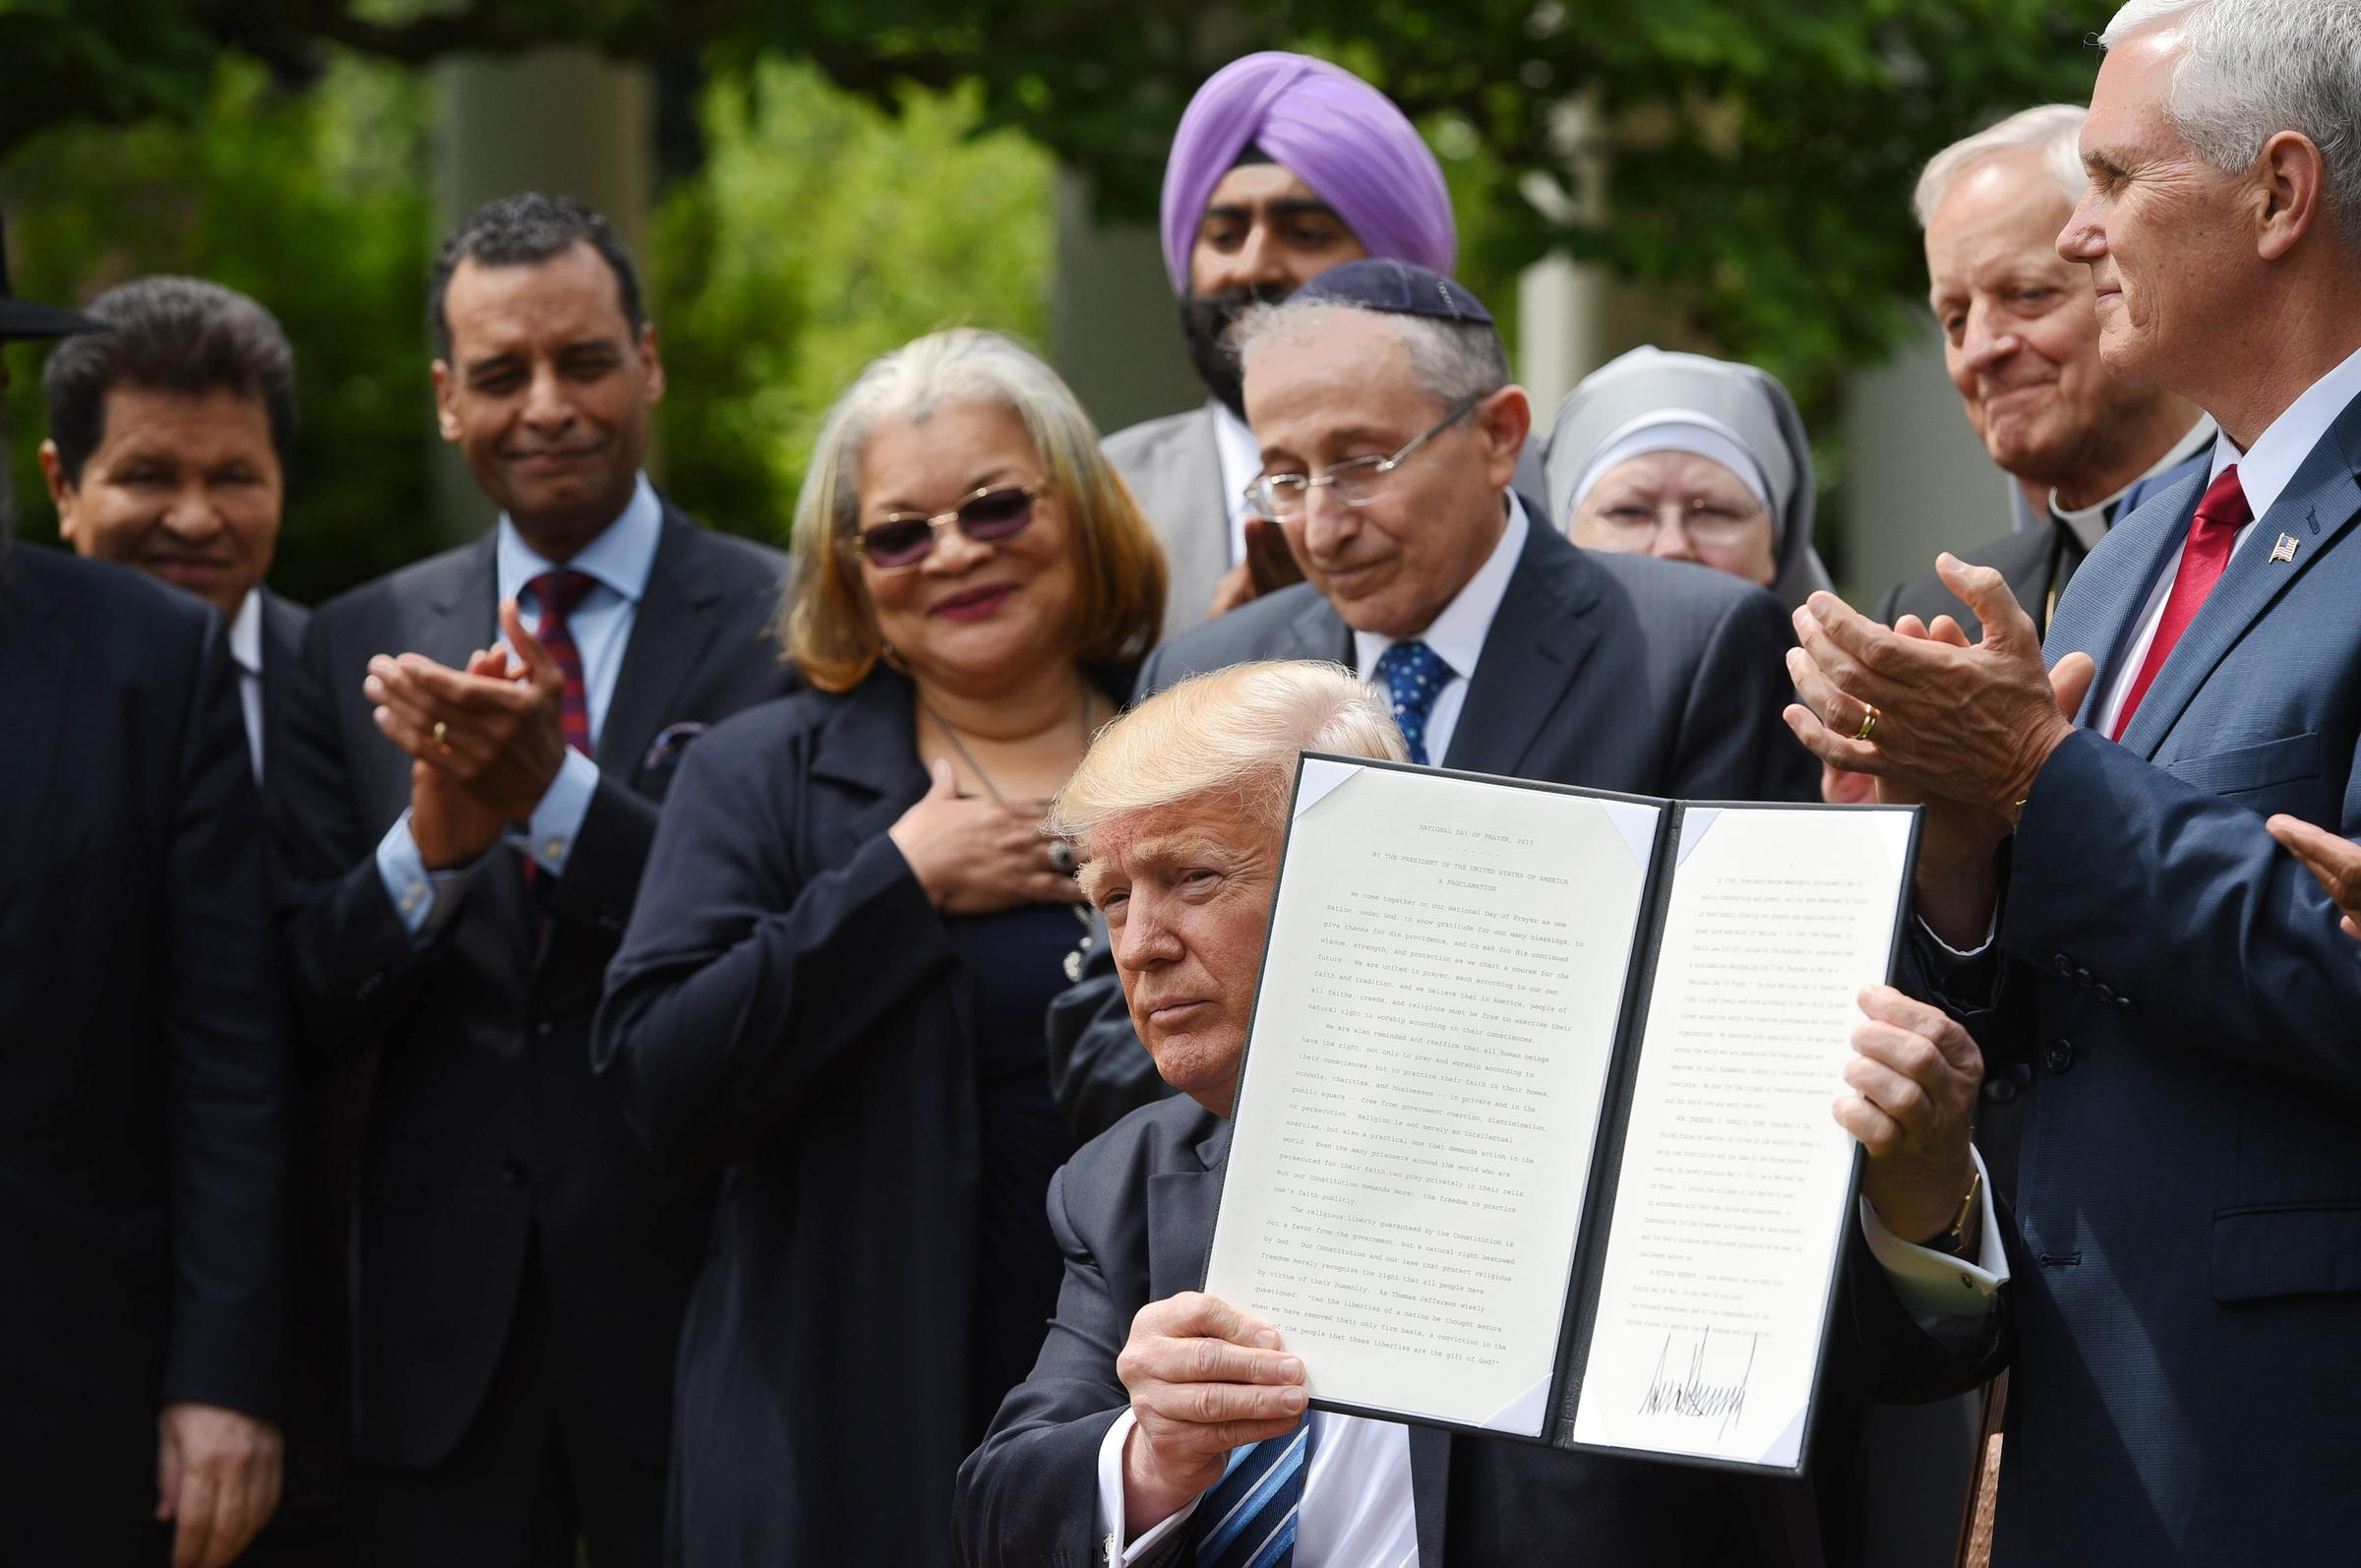 Here's what's in Trump's 'religious liberty' executive order